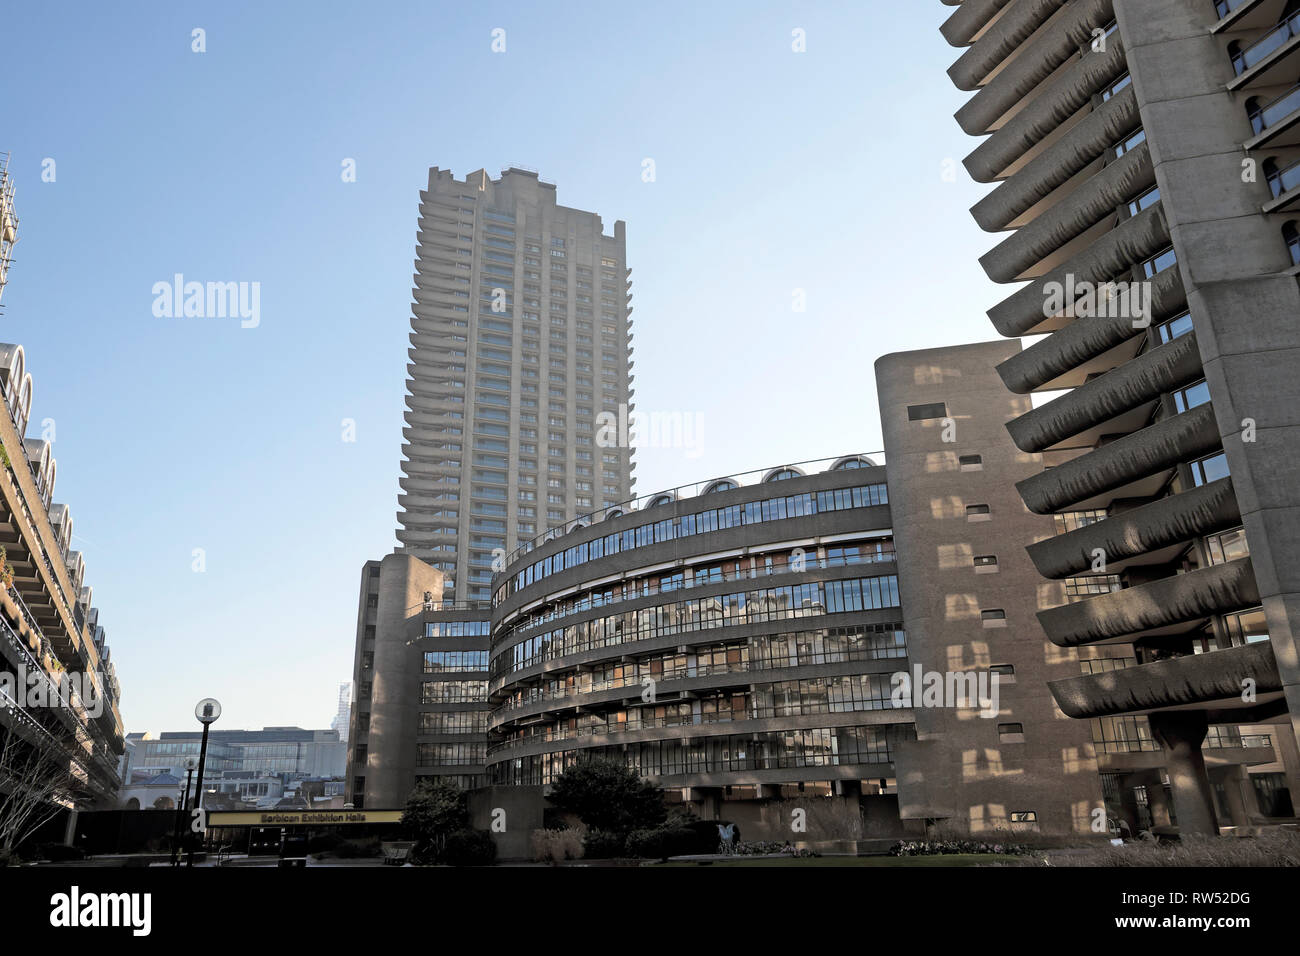 A view of housing blocks on the Barbican Estate in the City of London England UK  KATHY DEWITT Stock Photo